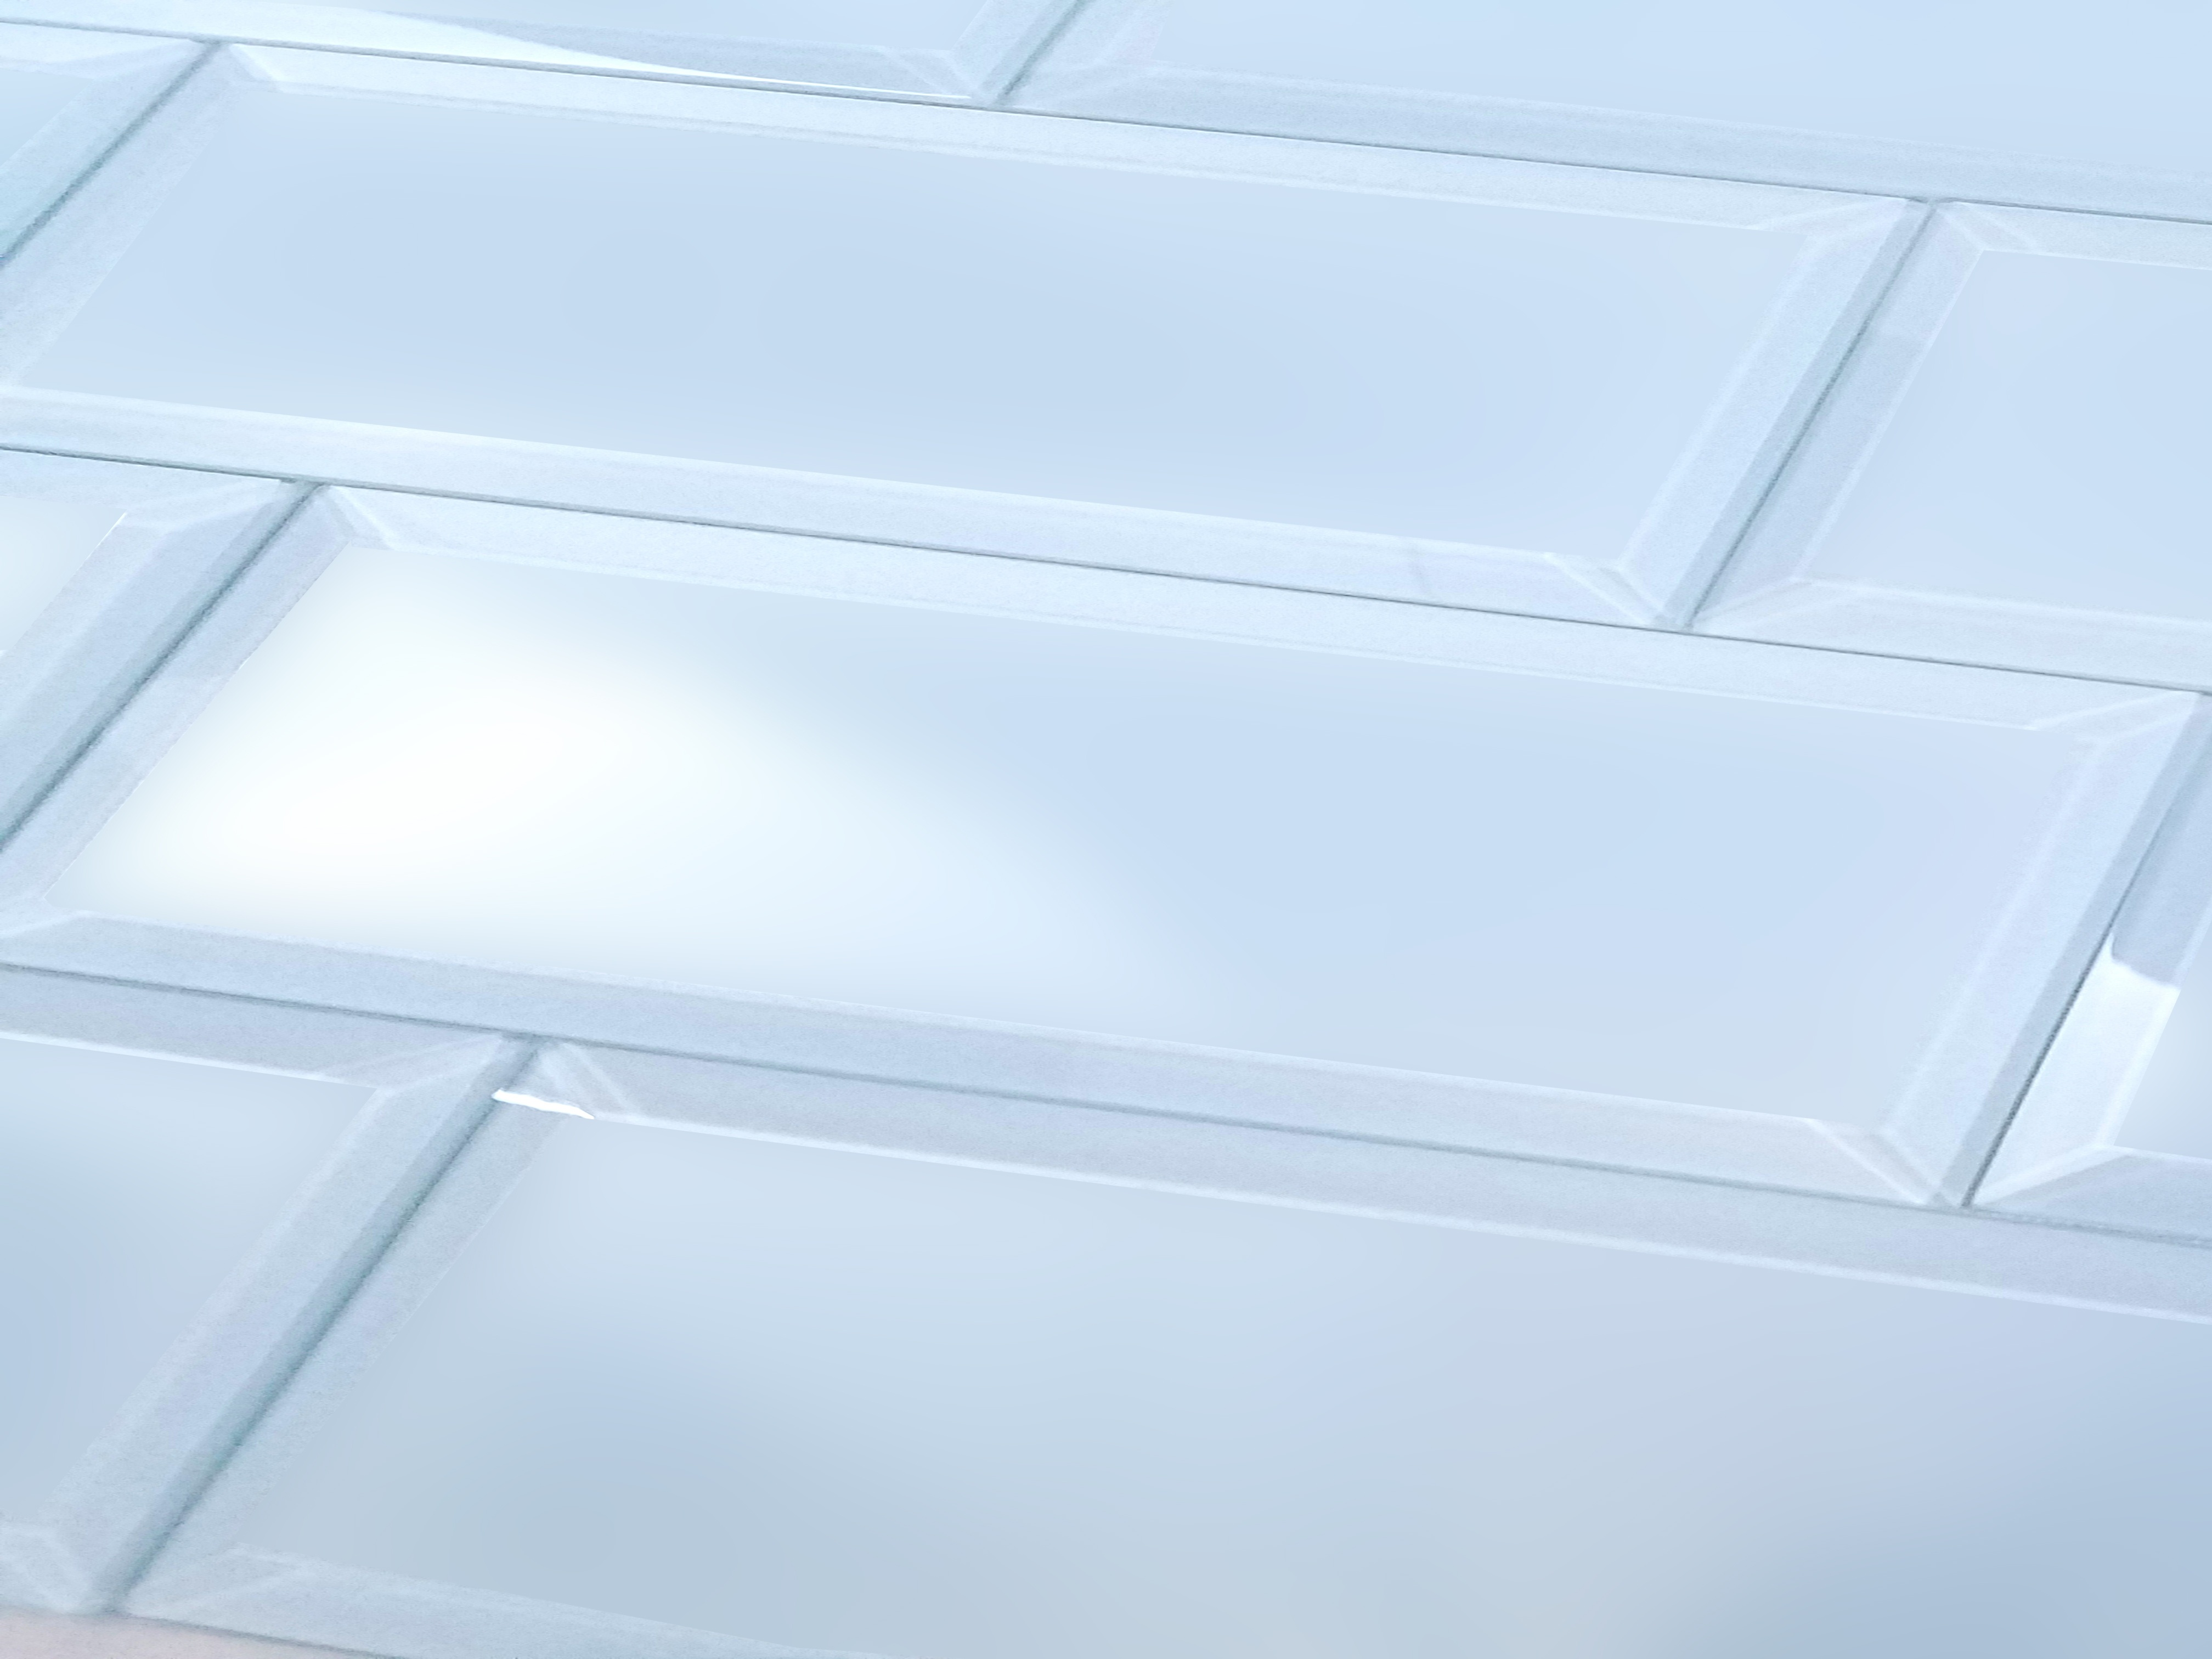 Frosted Elegance 3 In X 12 In Glass Subway Tile In